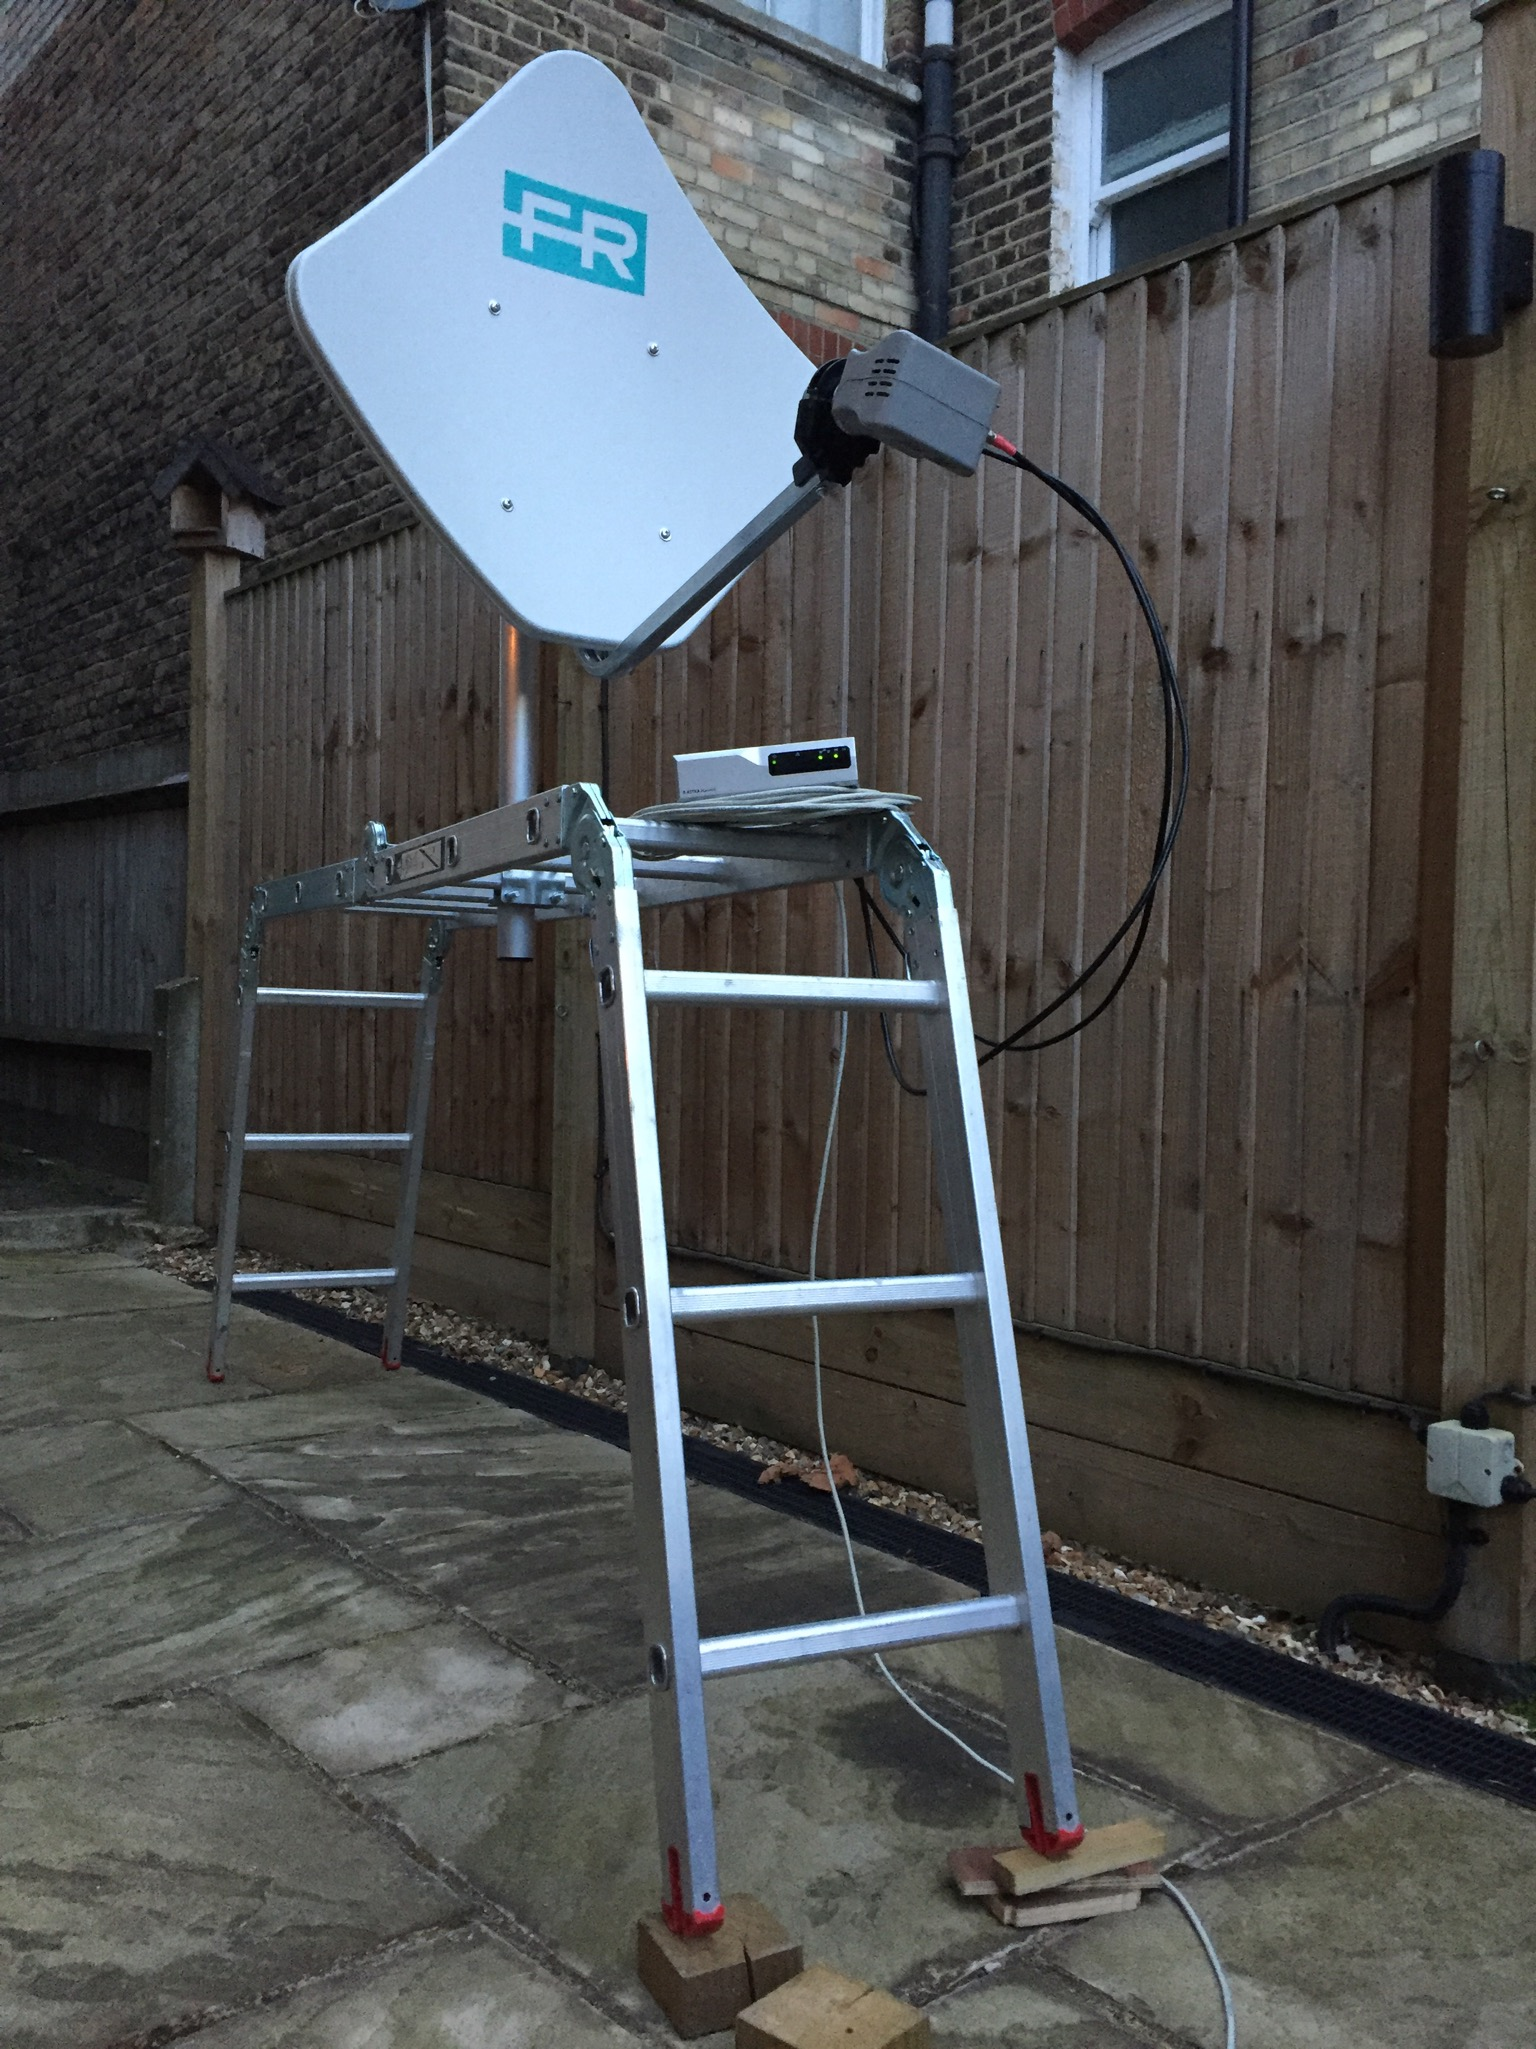 Antenna and modem on the make-shift test bench